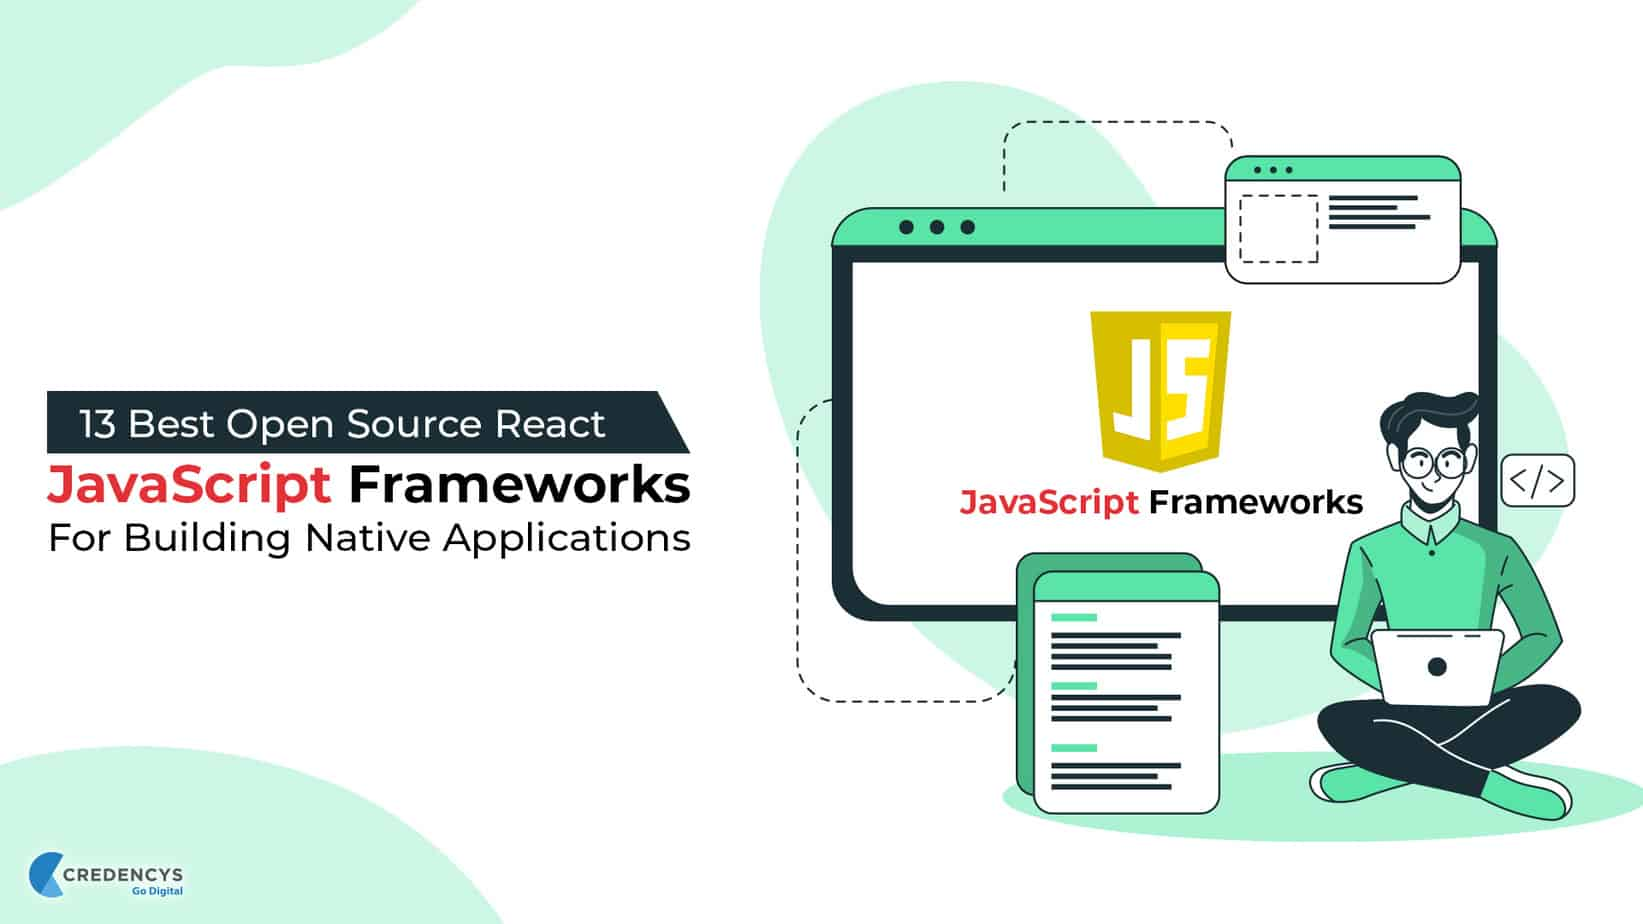 13 Best Open Source React JavaScript Frameworks For Building Native Applications